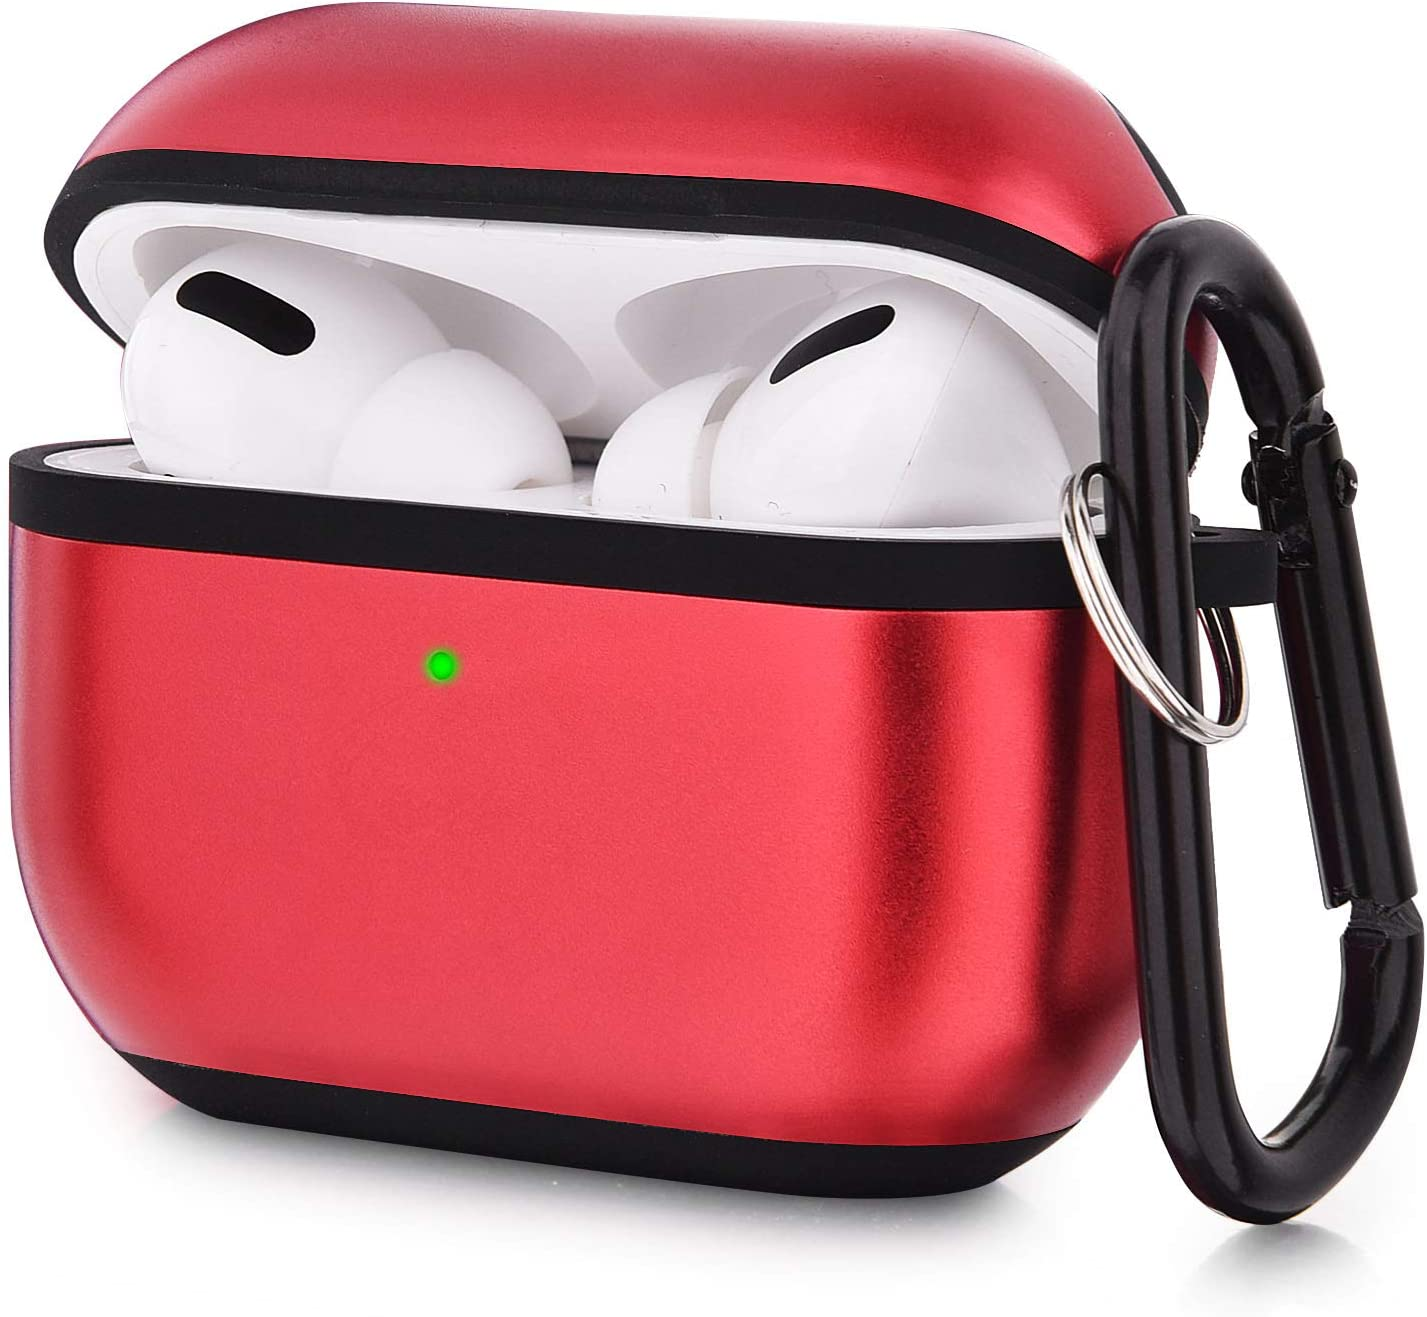 V-MORO Compatible AirPods Pro Case Cover, Metal Protective Carrying Case Skin with Keychain for Apple Airpod Pro Charing Case 2019 [Visible Front LED] (Red)